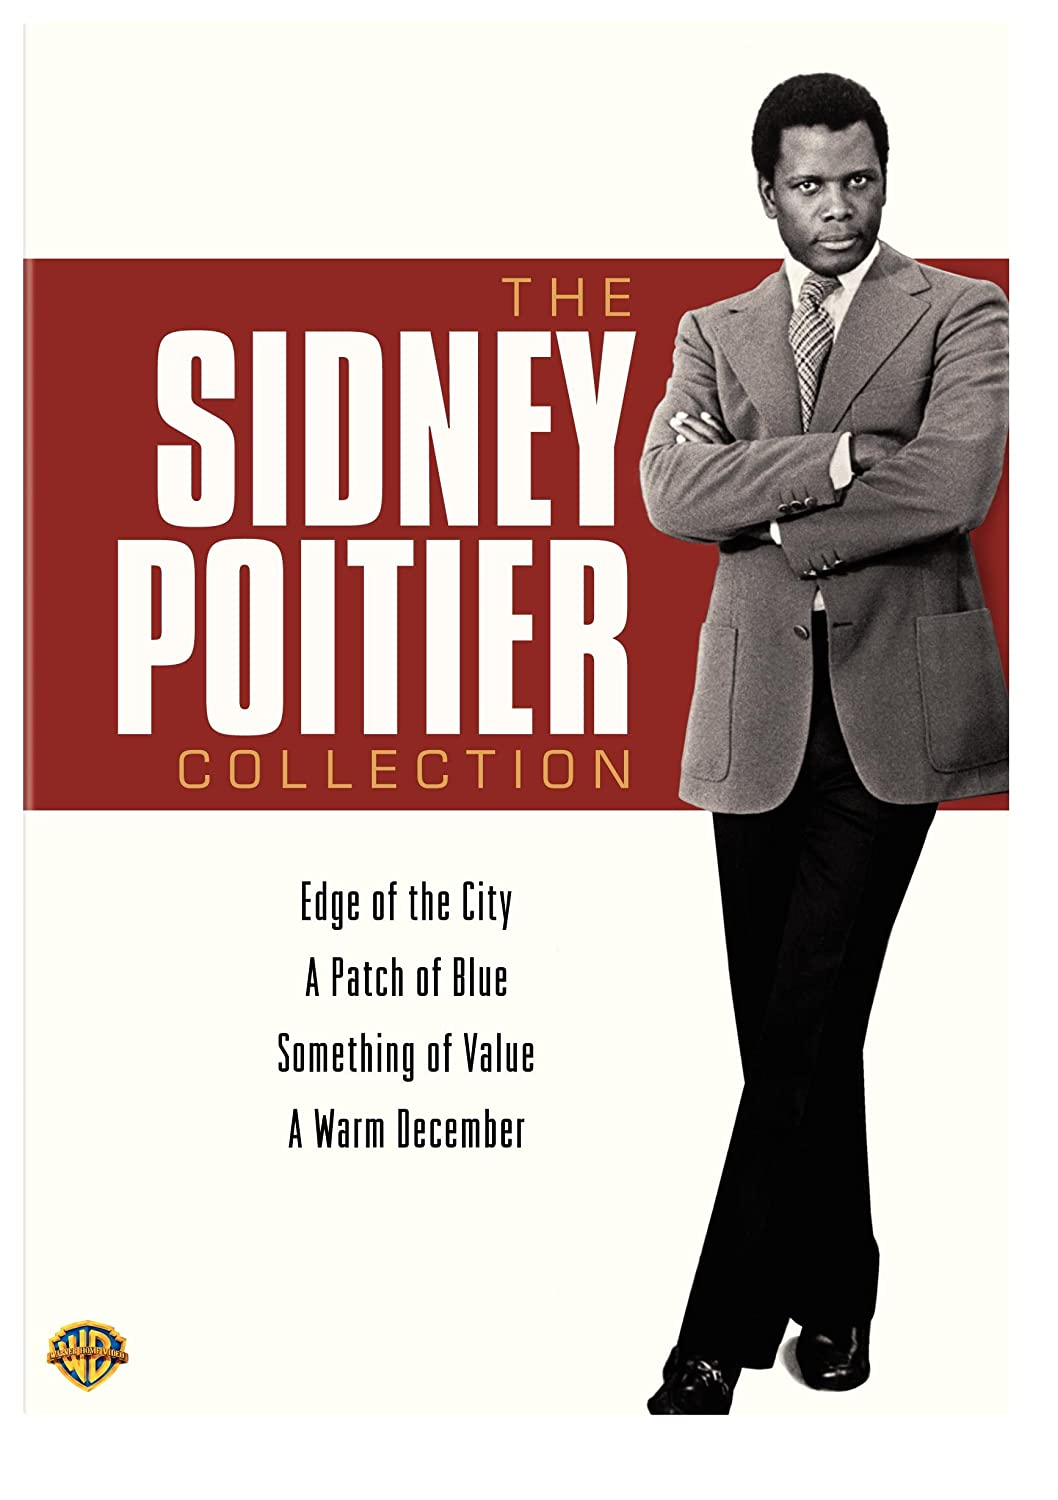 Amazon.com: The Sidney Poitier Collection (Edge of the City / Something of Value / A Patch of Blue / A Warm December): Movies & TV